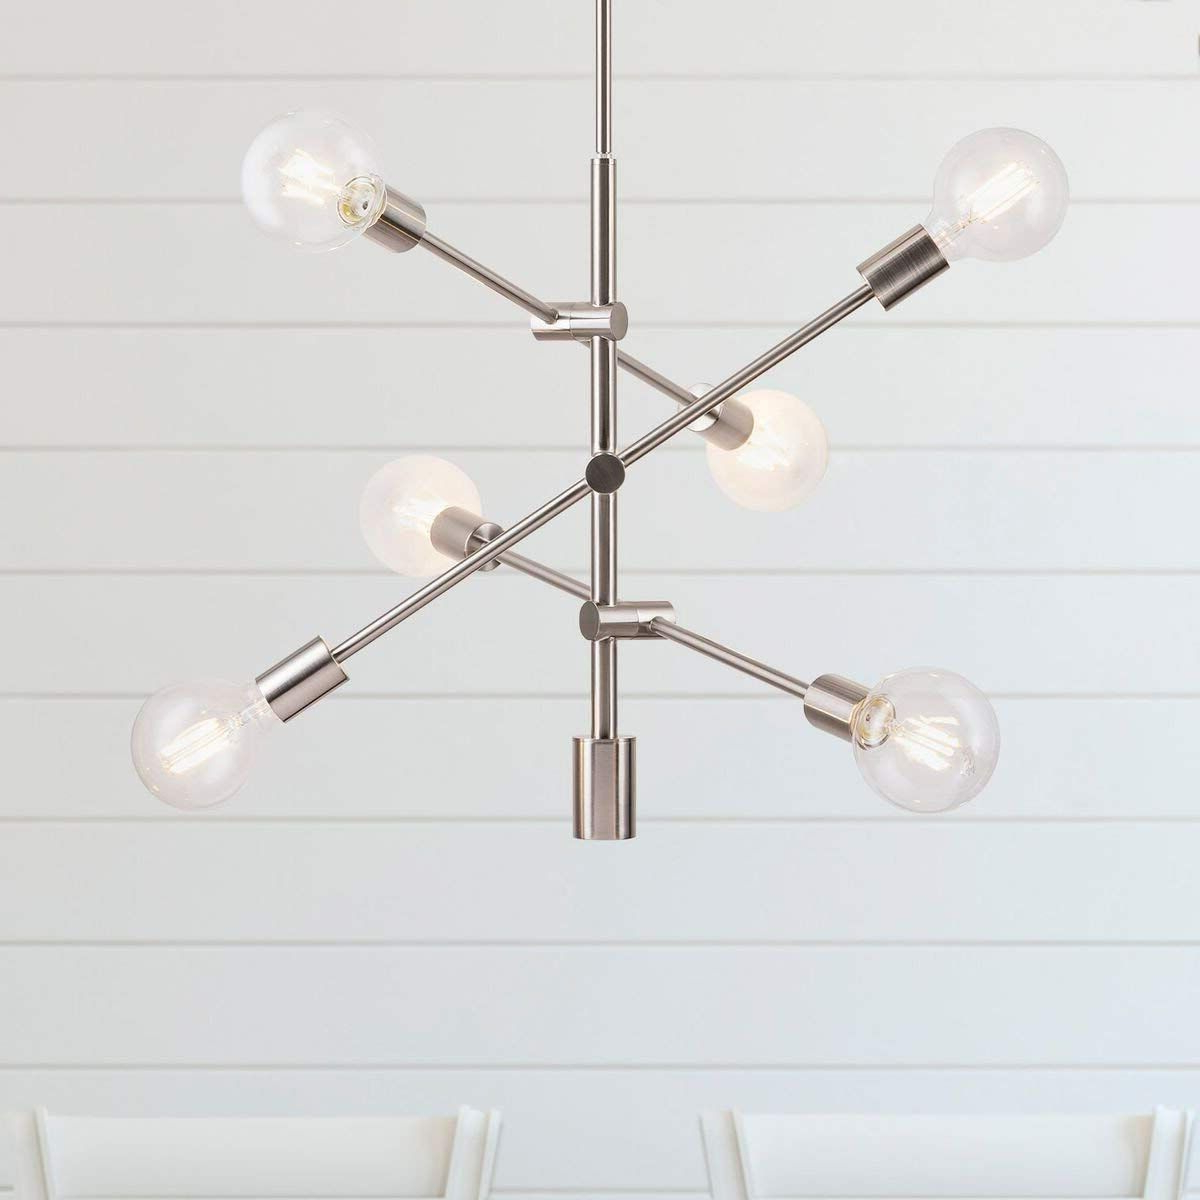 Eladia 6 Light Sputnik Chandeliers With Famous Marabella Led Sputnik Chandelier Light Fixture, Brushed (View 11 of 25)